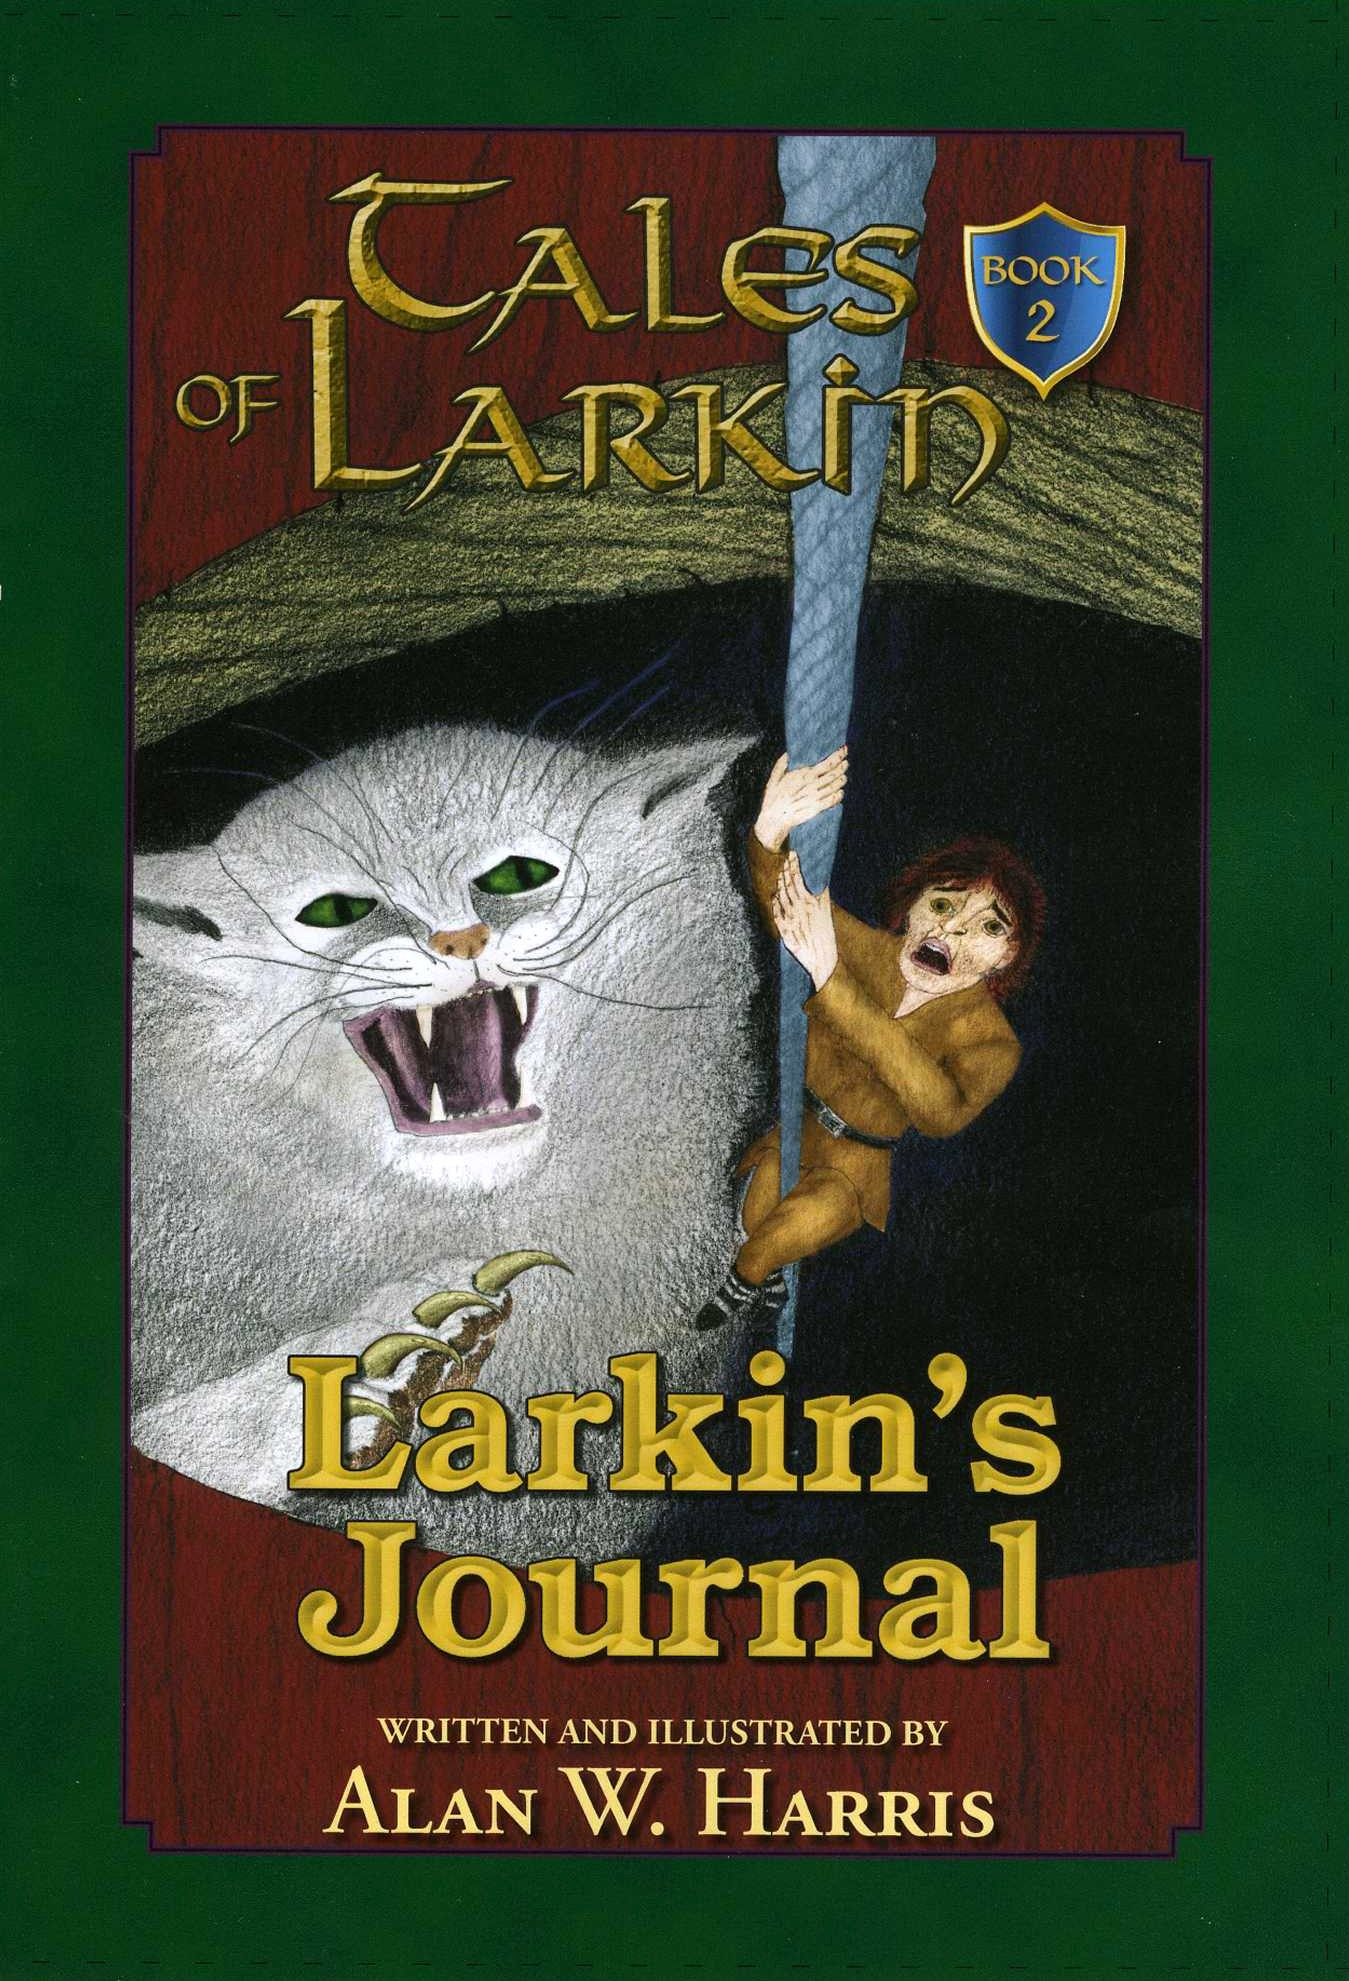 Larkin's Journal